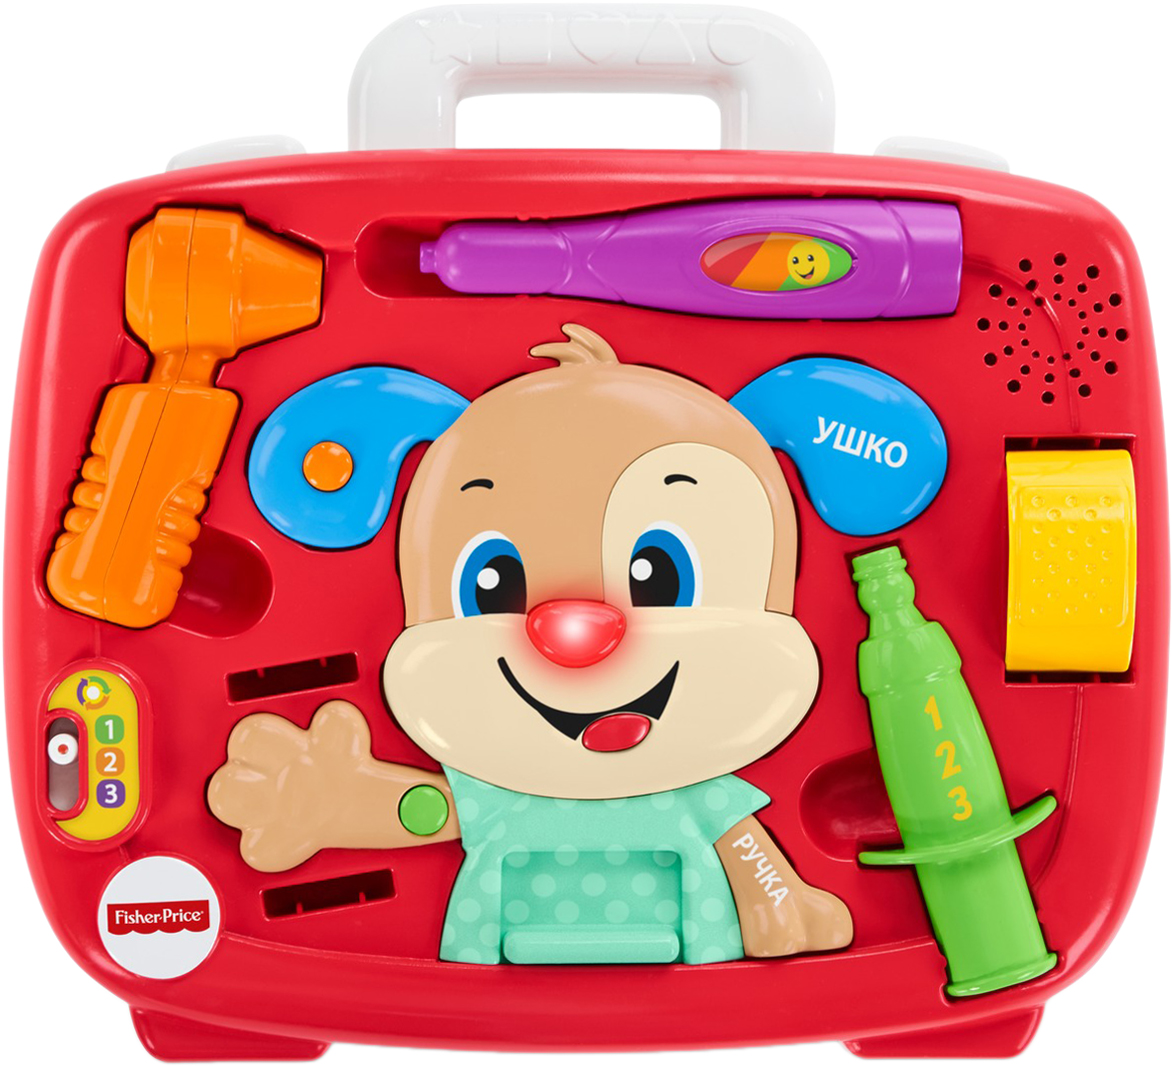 Fisher-Price Детский медицинский набор Ученого Щенка theodore gilliland fisher investments on utilities